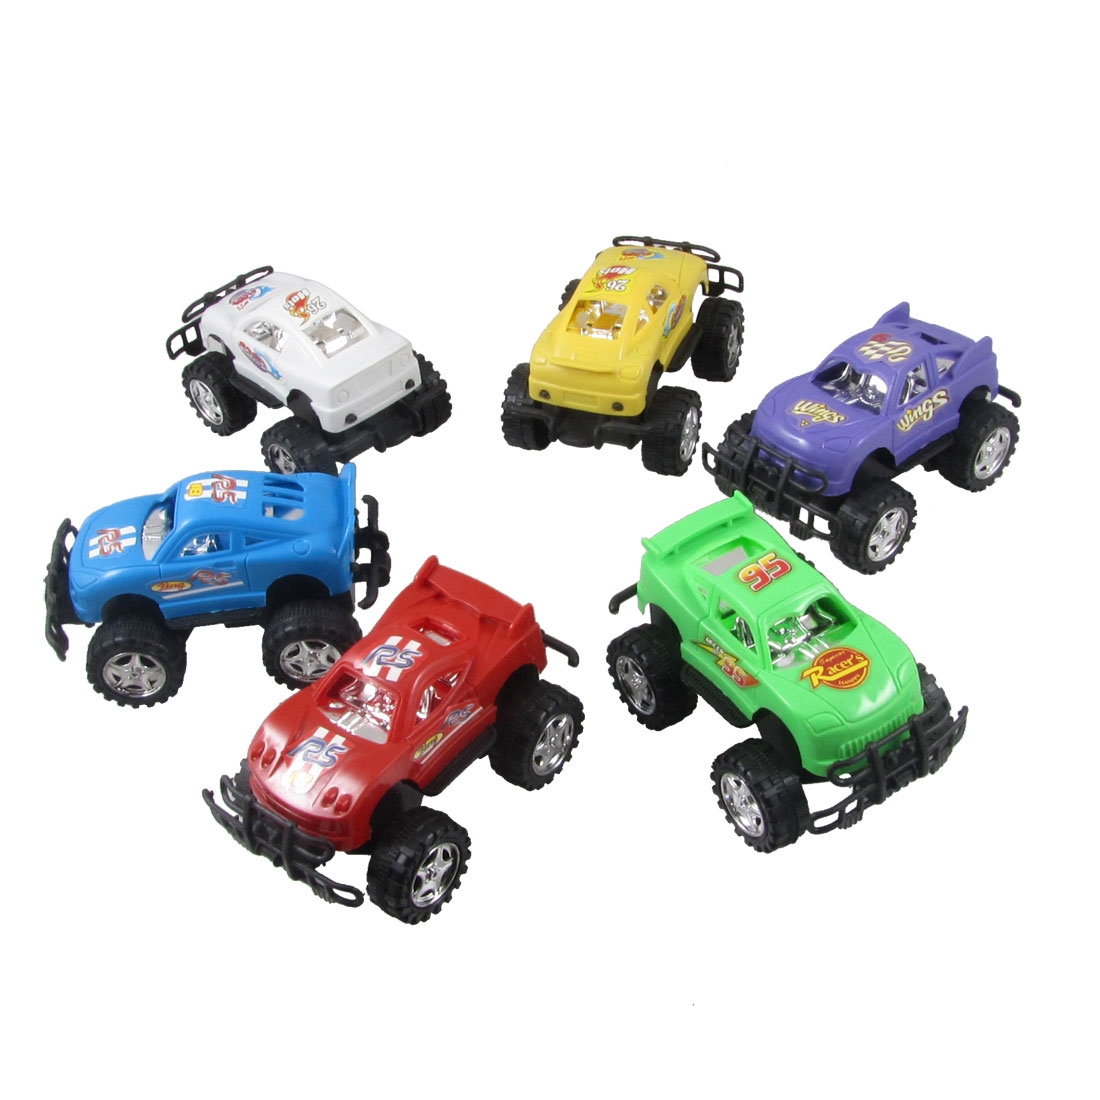 6 Pcs Green Blue Yellow Competition Racing Car Model Toy for Children